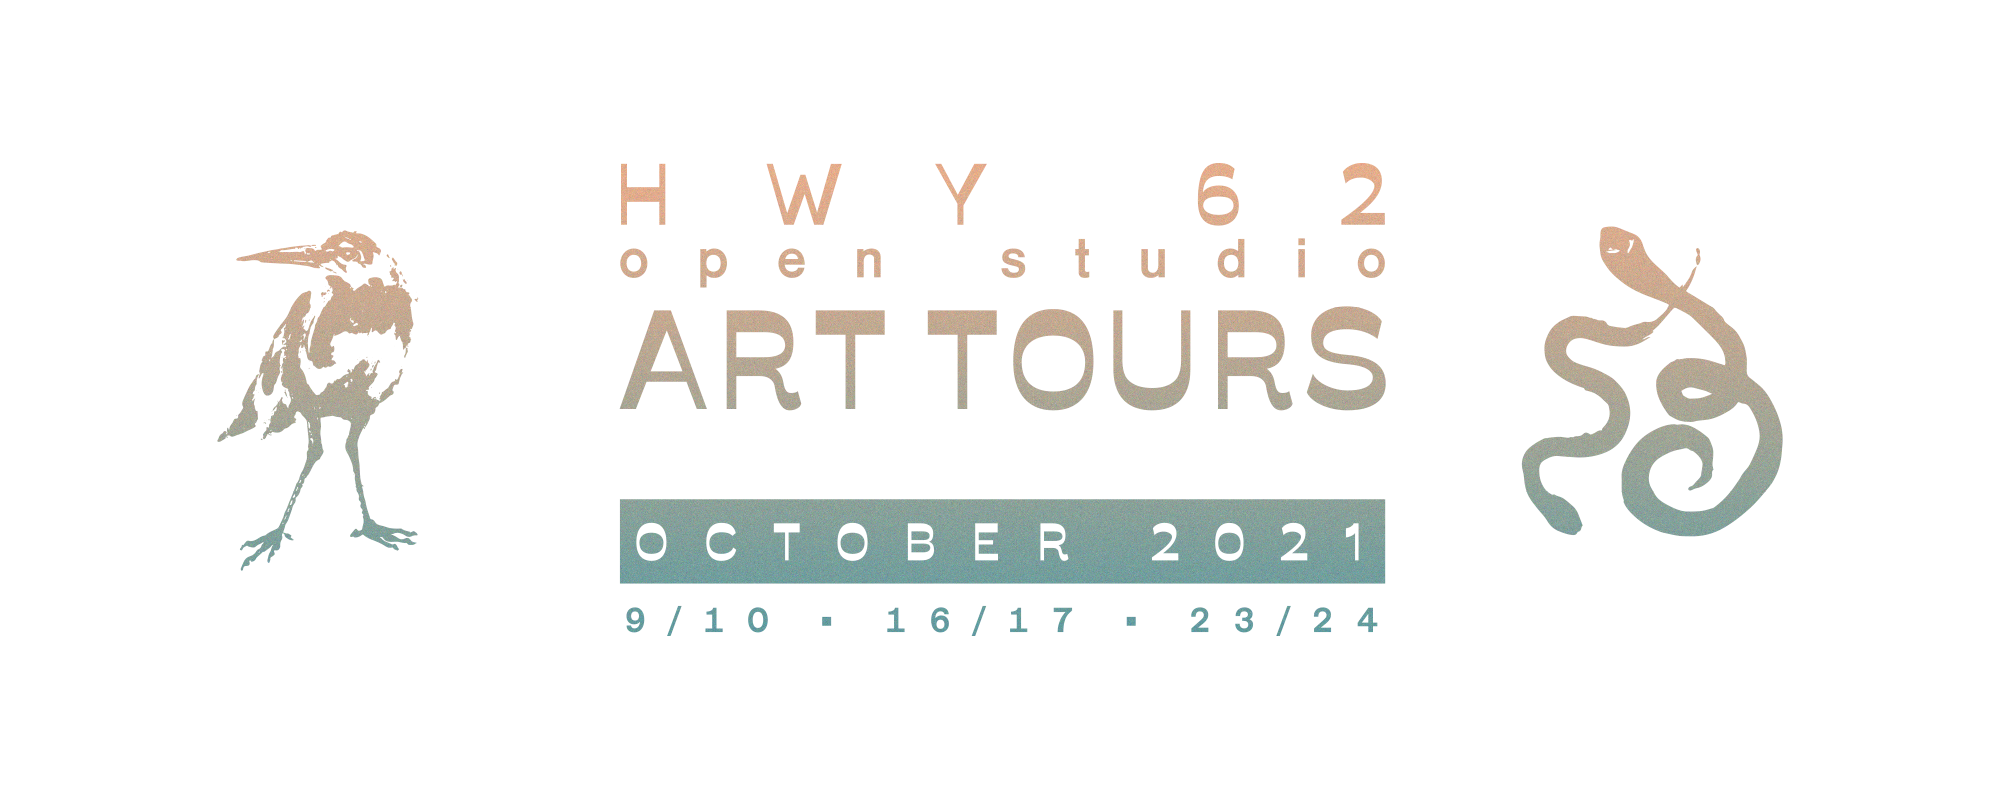 Hwy 62 Open Studios Art Tours October 2021 9/10, 16/17, 23/24. Illustrations of a raven and two snakes on a white background.